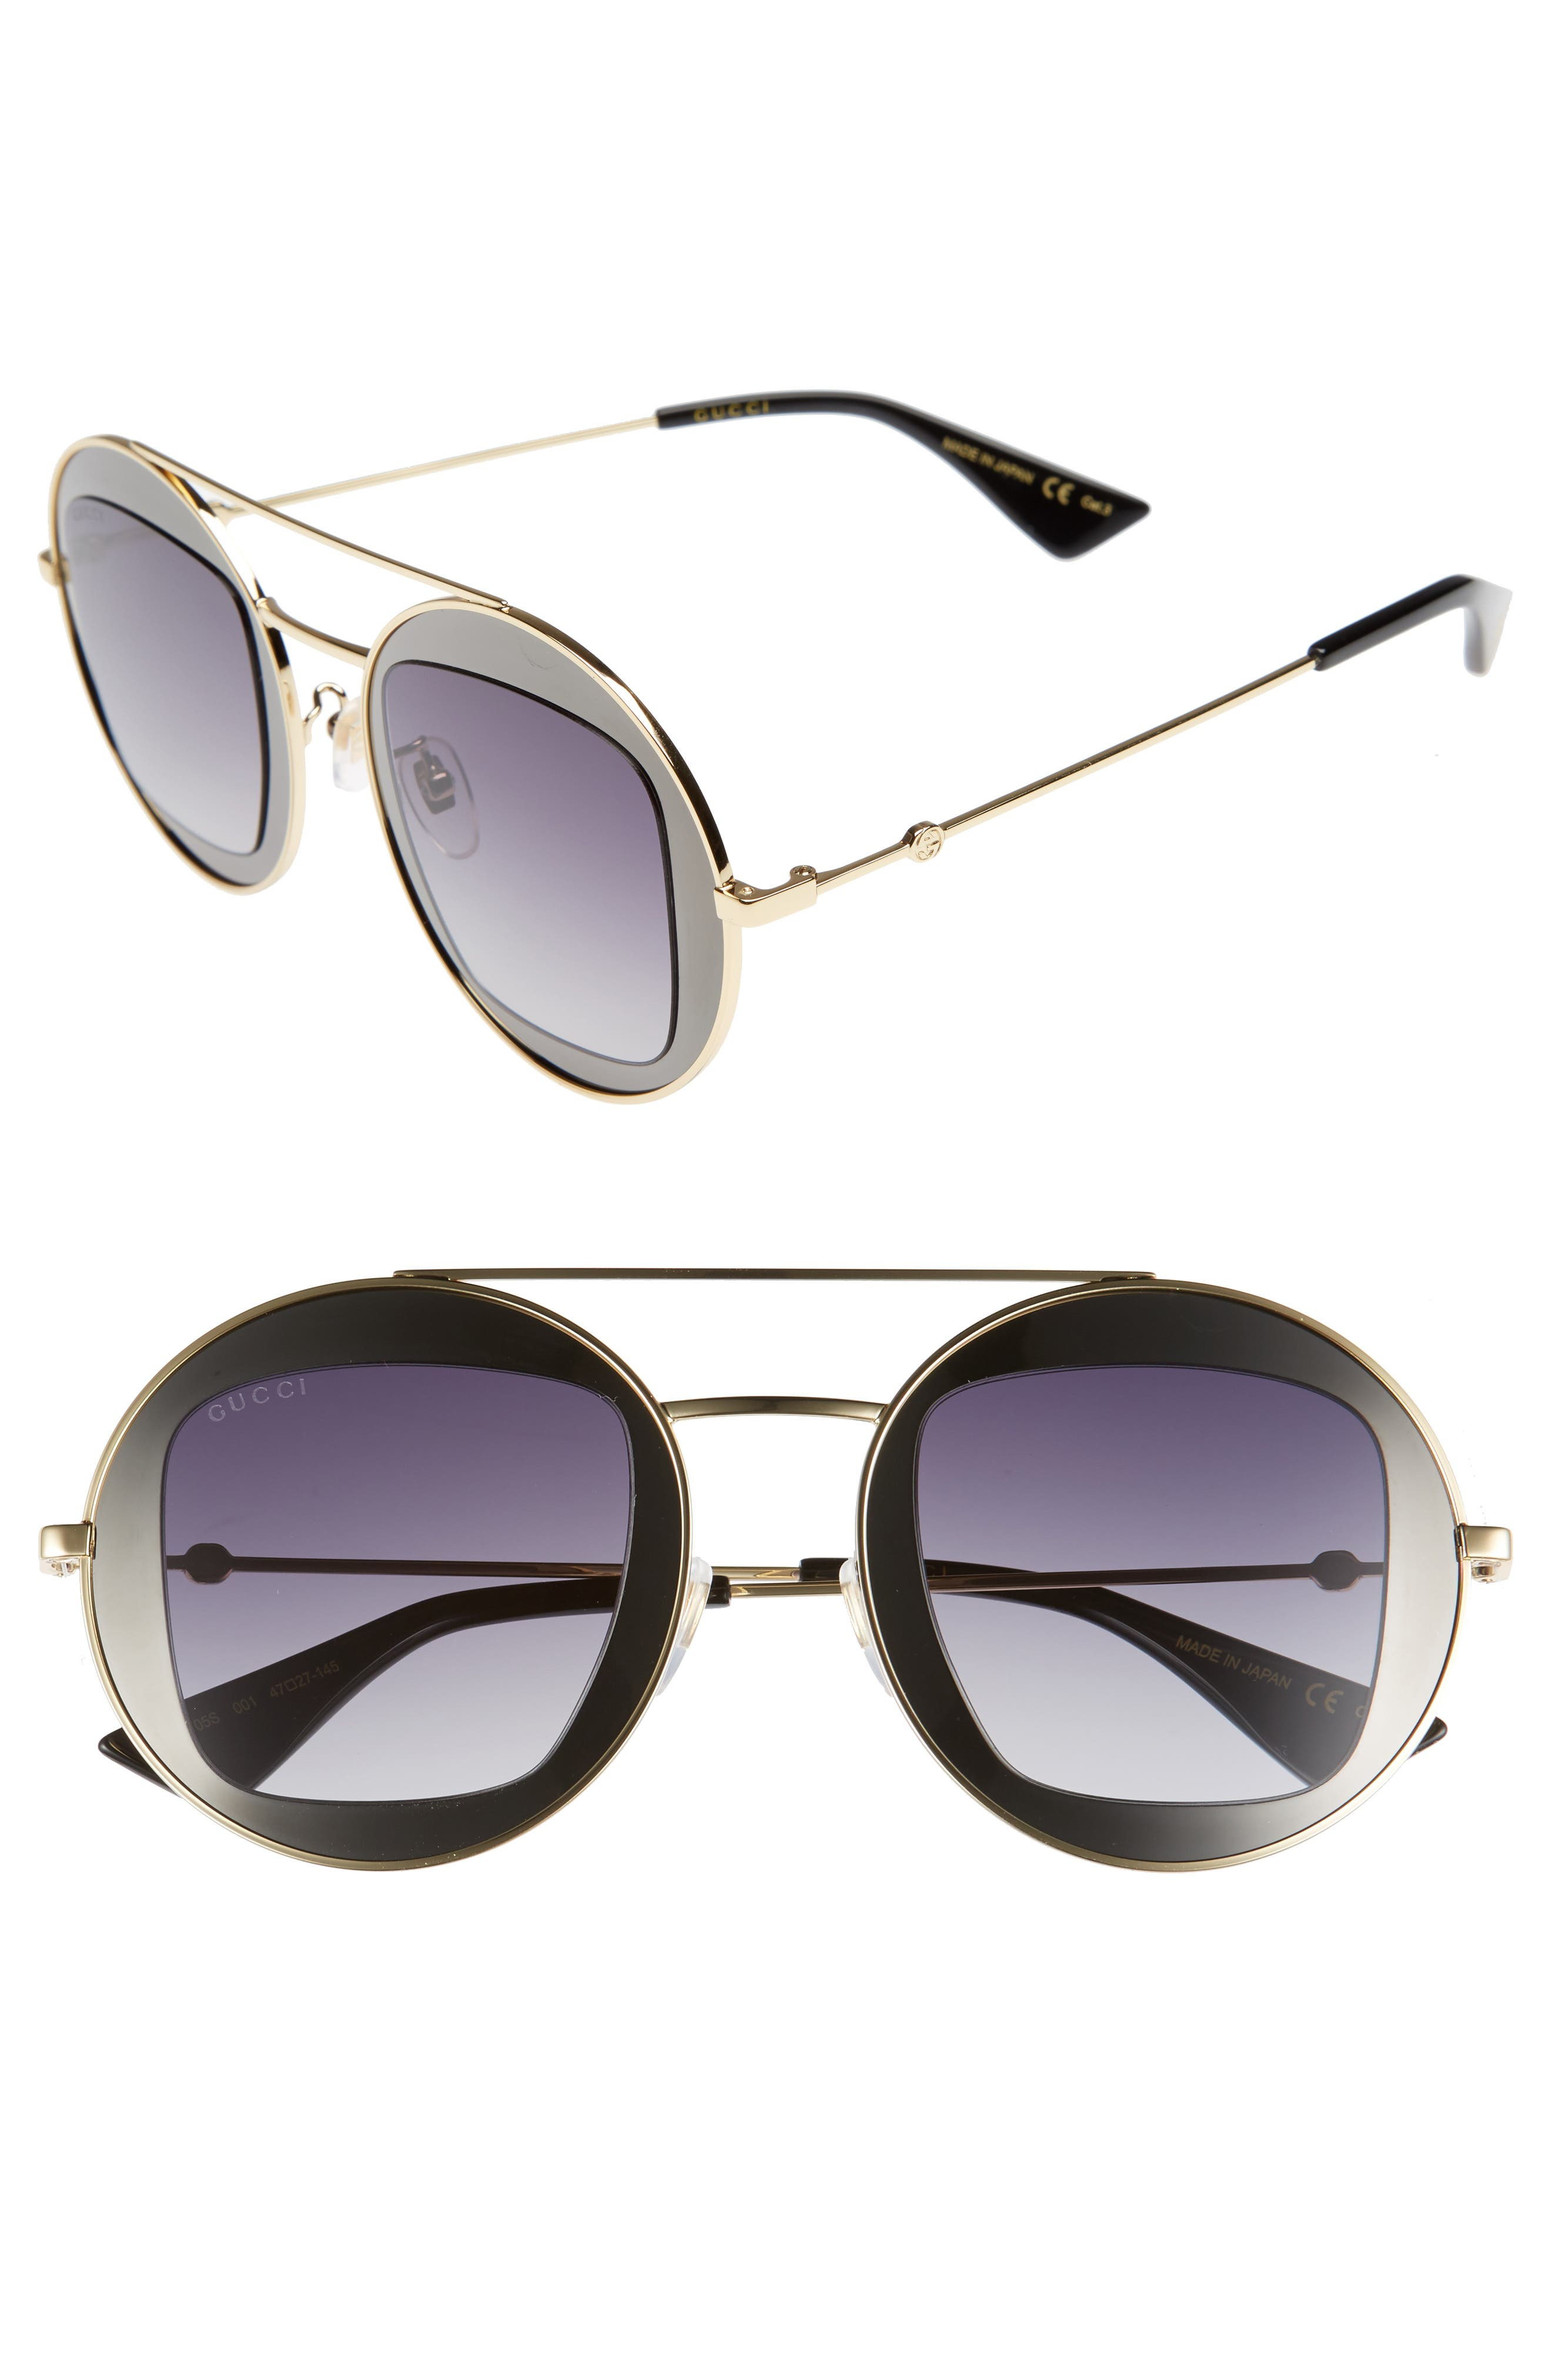 47mm Round Sunglasses,                             Main thumbnail 1, color,                             Matte Gold/ Grey